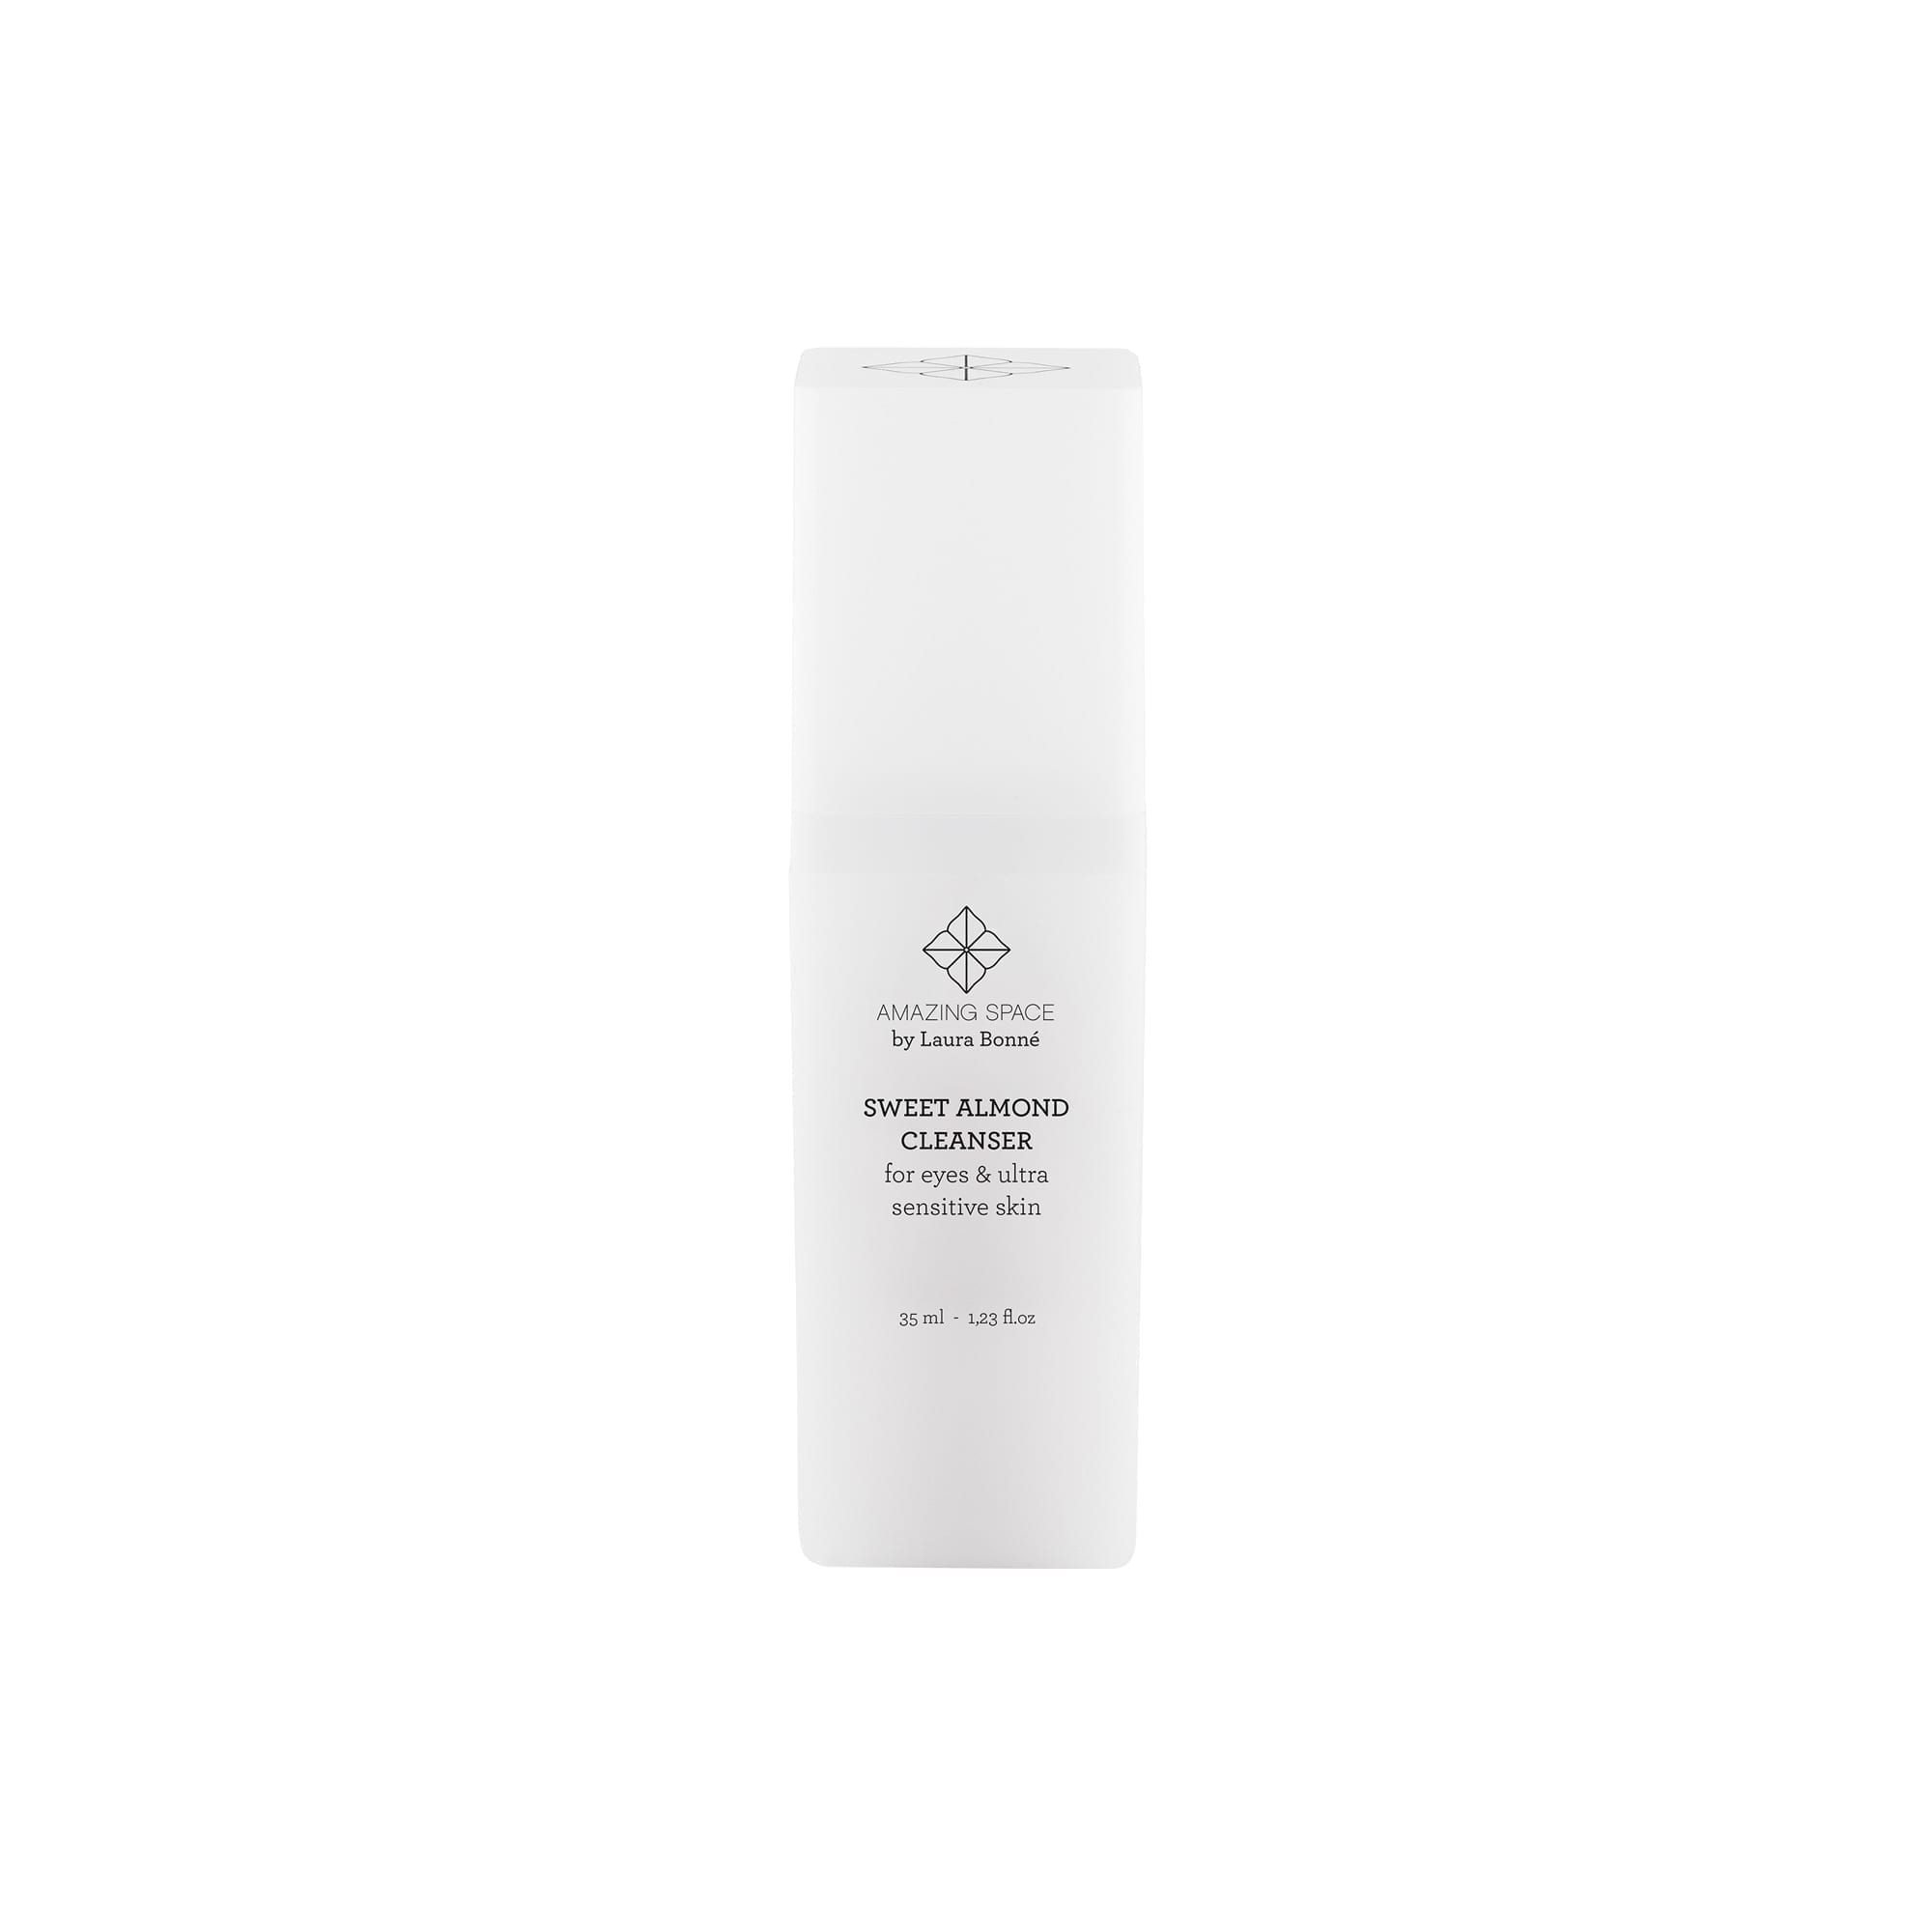 Sweet Almond Cleanser - For Eyes & Ultra Sensitive Skin (35ml) - Amazing Space